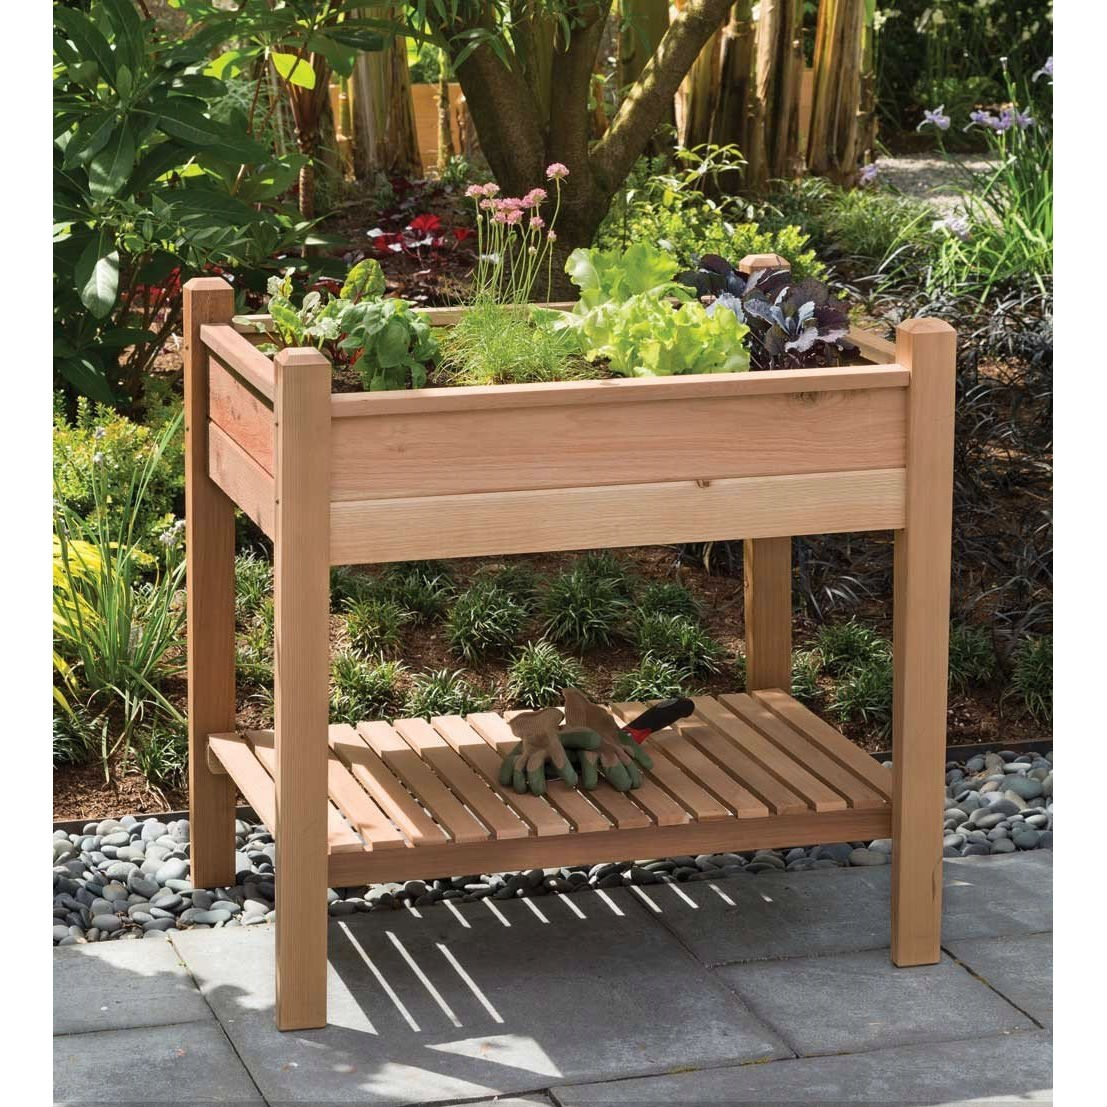 """Elevated Garden Bed Planter Box in Unstained Western Red Cedar, APEG13395 :  This Elevated Garden Bed Planter Box in Unstained Western Red Cedar is a unique planter box designed to allow gardeners to tend to their plants while standing, helping to avoid back strain and improve the patio gardening experience. Both sturdy and decorative, the EZ Plant Garden's four tapered legs gracefully support a solidly constructed bed that is crowned with beveled post tops. Plant it with your favorite her herbs, vegetables or flowers. Includes optional plastic bed liner and easy-to-follow assembly instructions. Tongue and groove cedar bed walls that fit into mortised corner posts for added strength; Naturally rot and pest resistant, may be left unstained to achieve silver patina or finished with your choice of stain; Storage shelf provides space for tools and garden supplies; Assembled dimensions (width x depth x height): 32.75"""" x 24"""" x 32""""; Large 2 cu. ft./15 gal. capacity."""